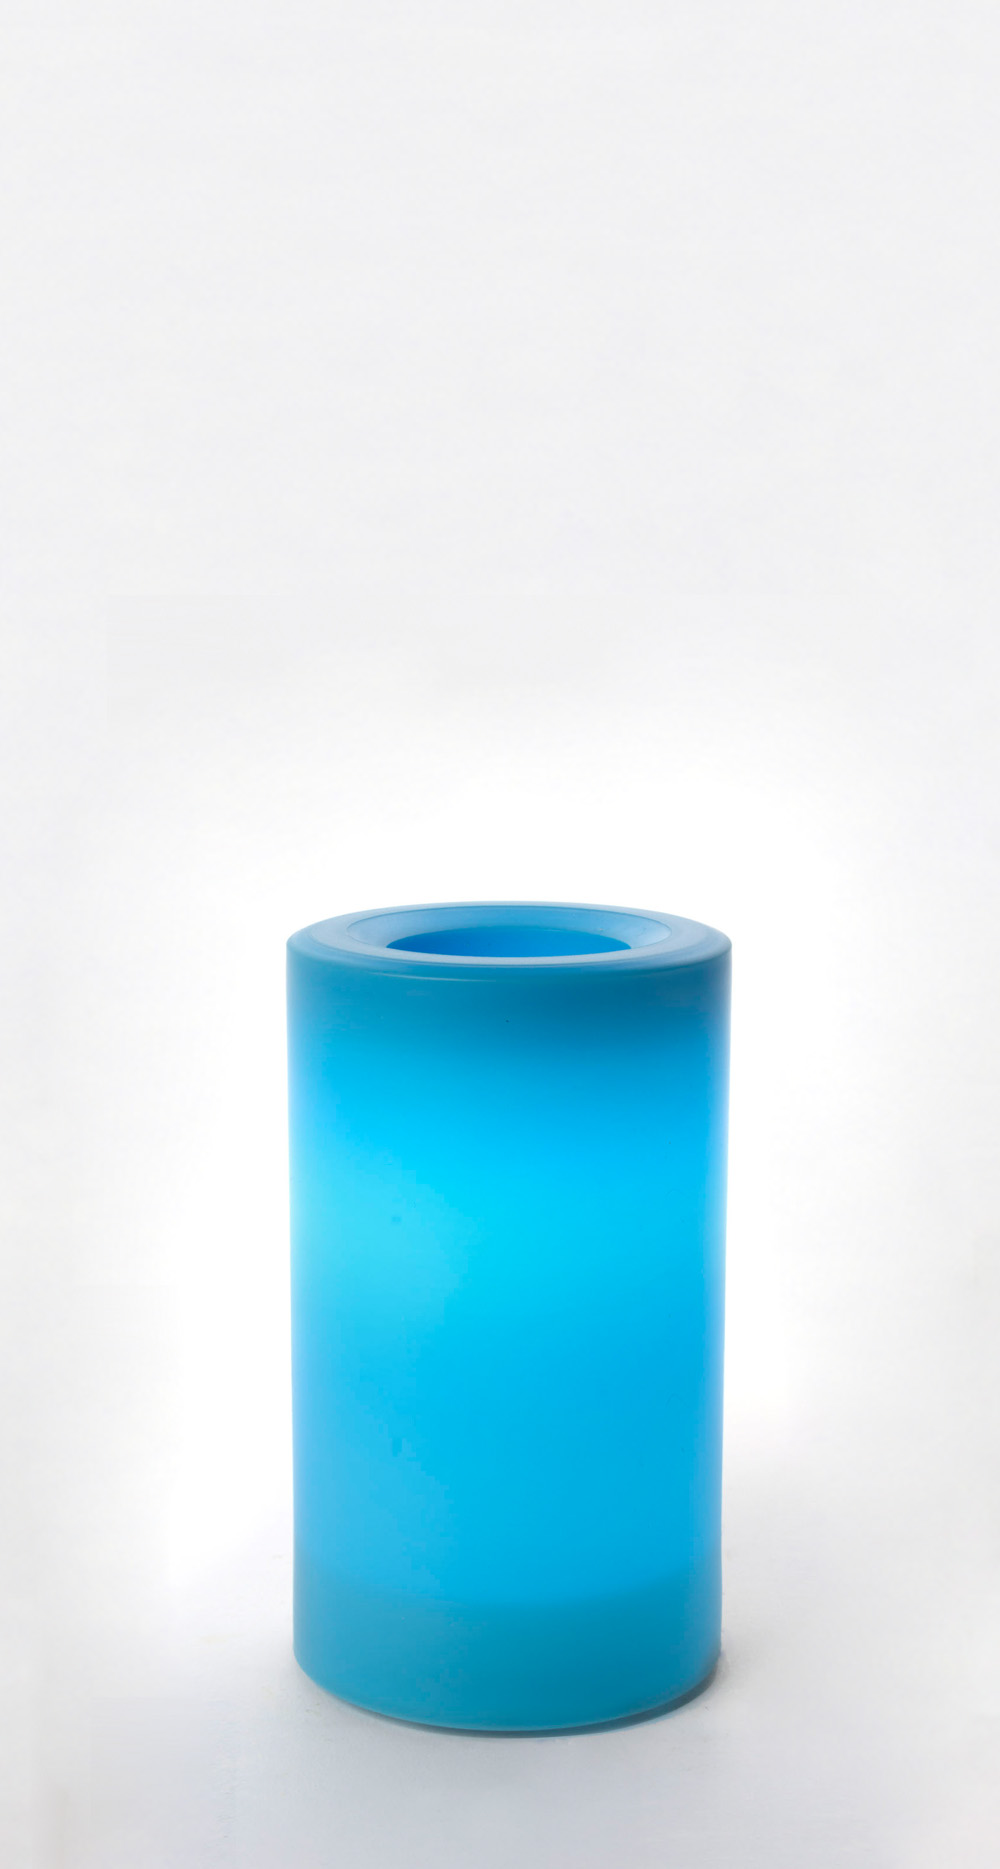 5 Inch Flameless Outdoor Pillar Candle with Timer - Blue